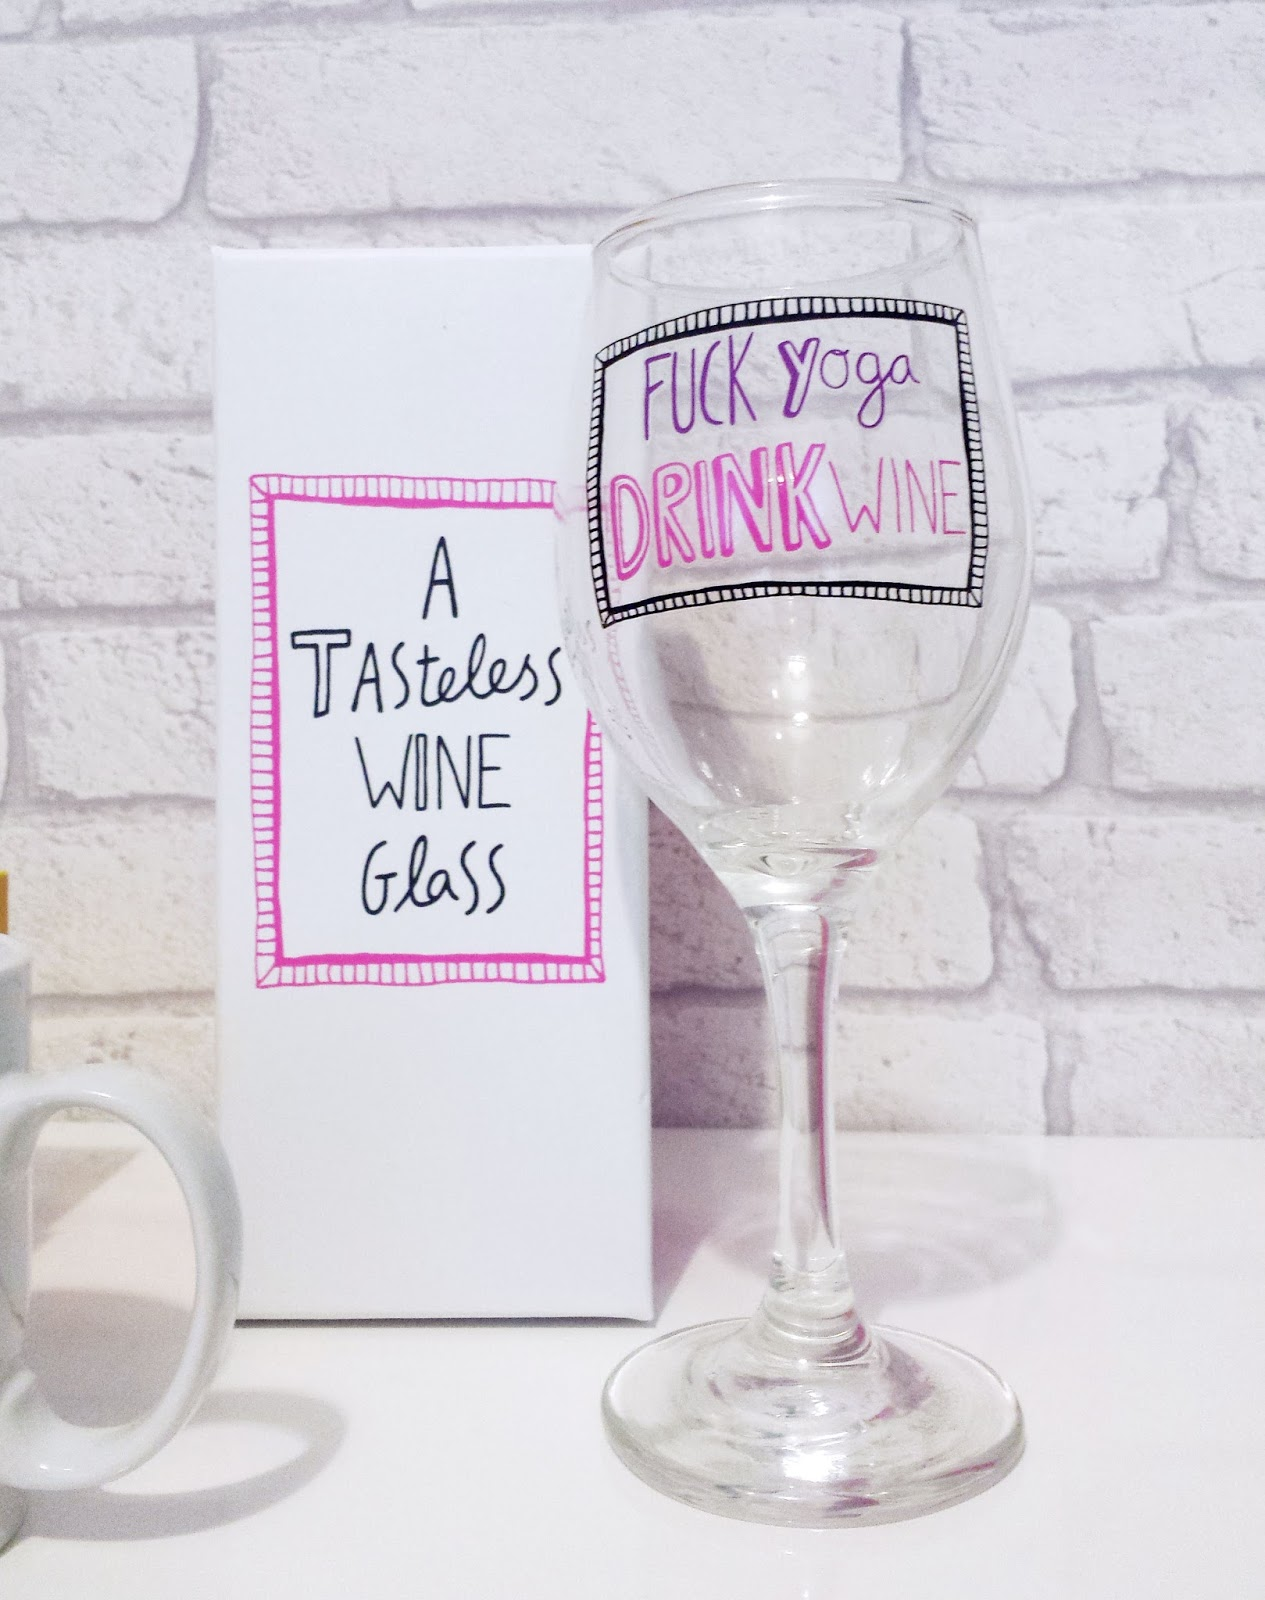 A Tasteless Wine Glass - Fuck Yoga Drink Wine